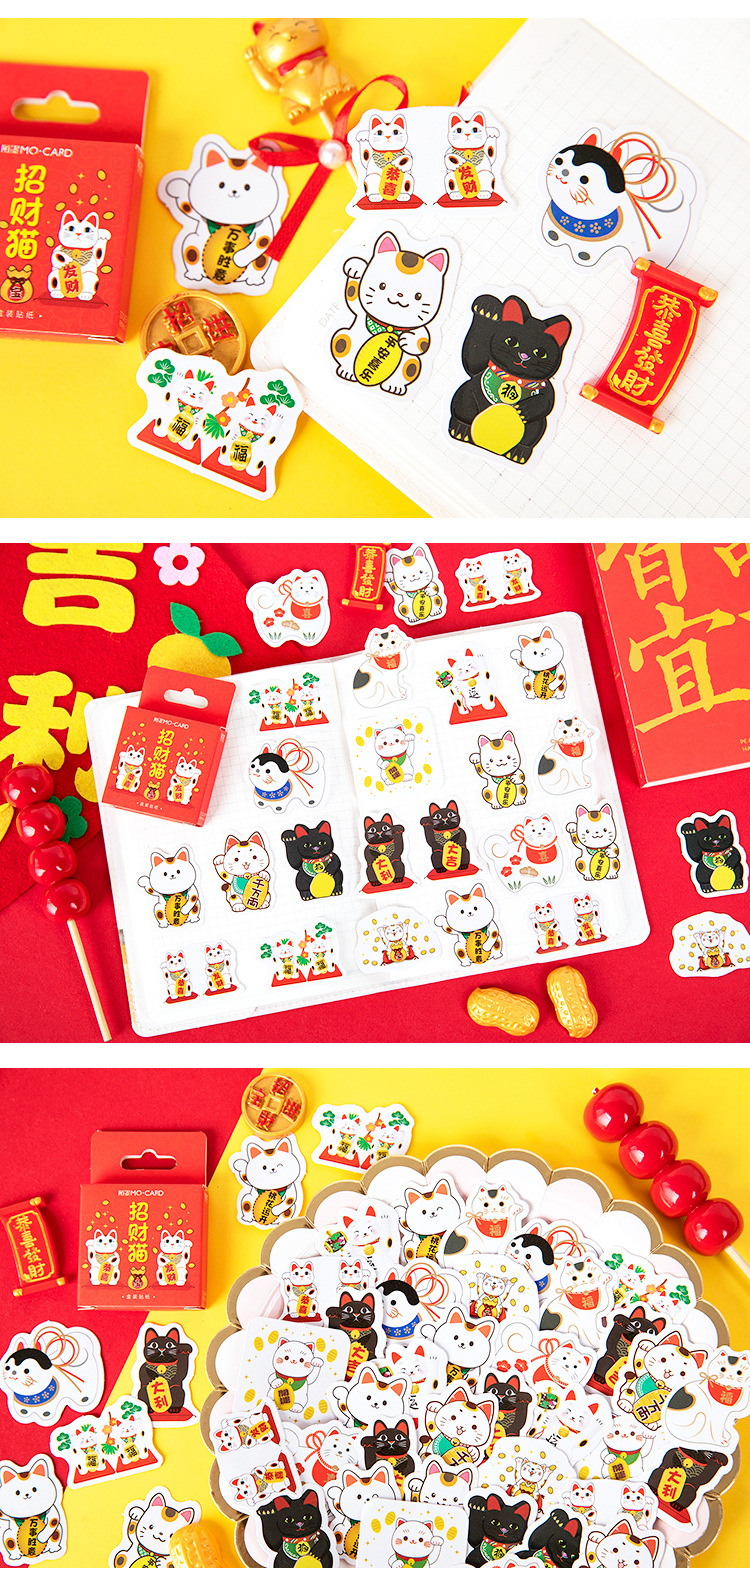 45pcs Moon Notebook Stickers Cartoon Lovely Fashion Theme Journal Stickers School Office Pads Stationery